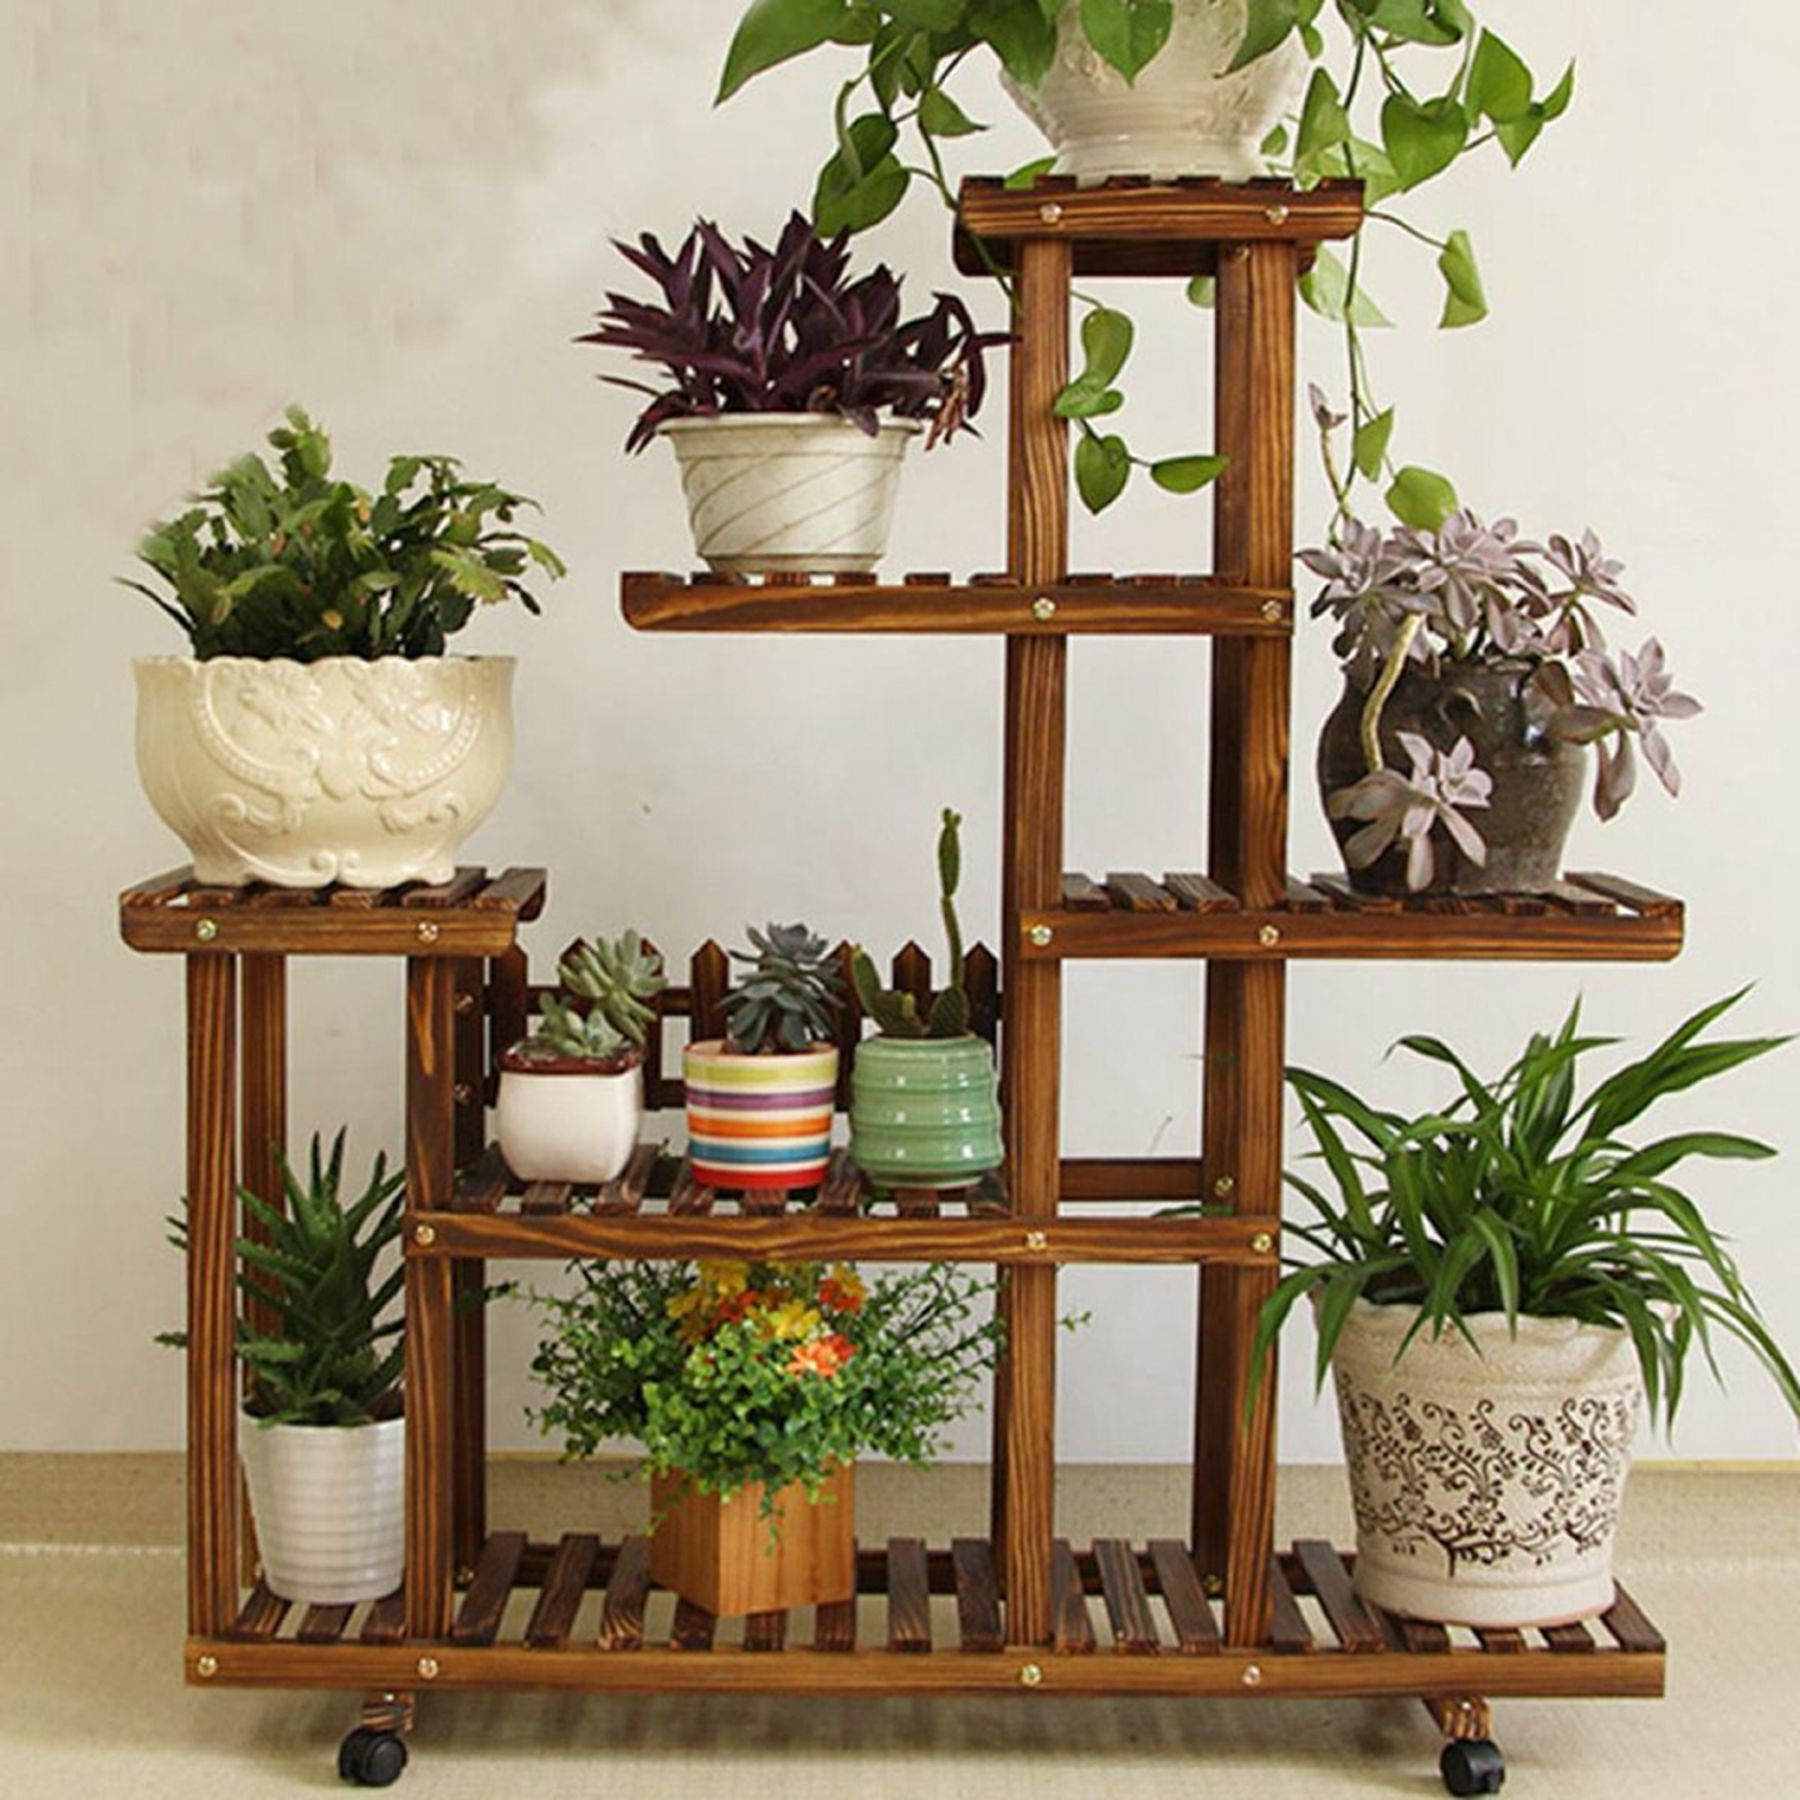 15 awesome flower rack design ideas to decorate your home